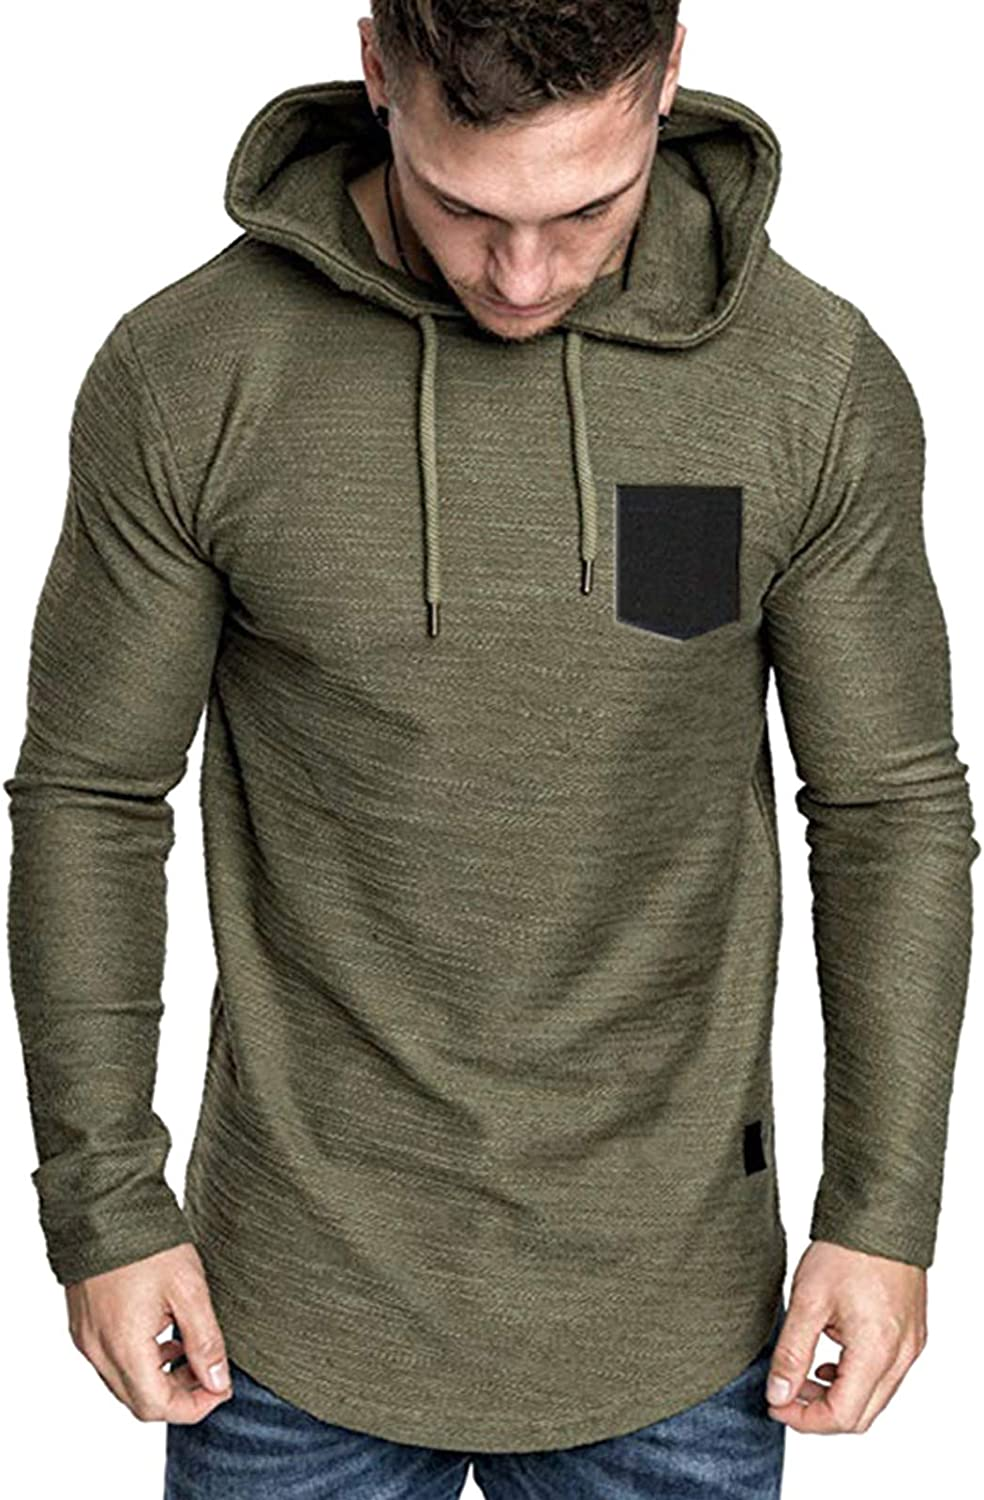 Mens Fashion Hoodie Athletic Solid Color Sweatshirt Lightweight Pocket stitching Sport Pullover